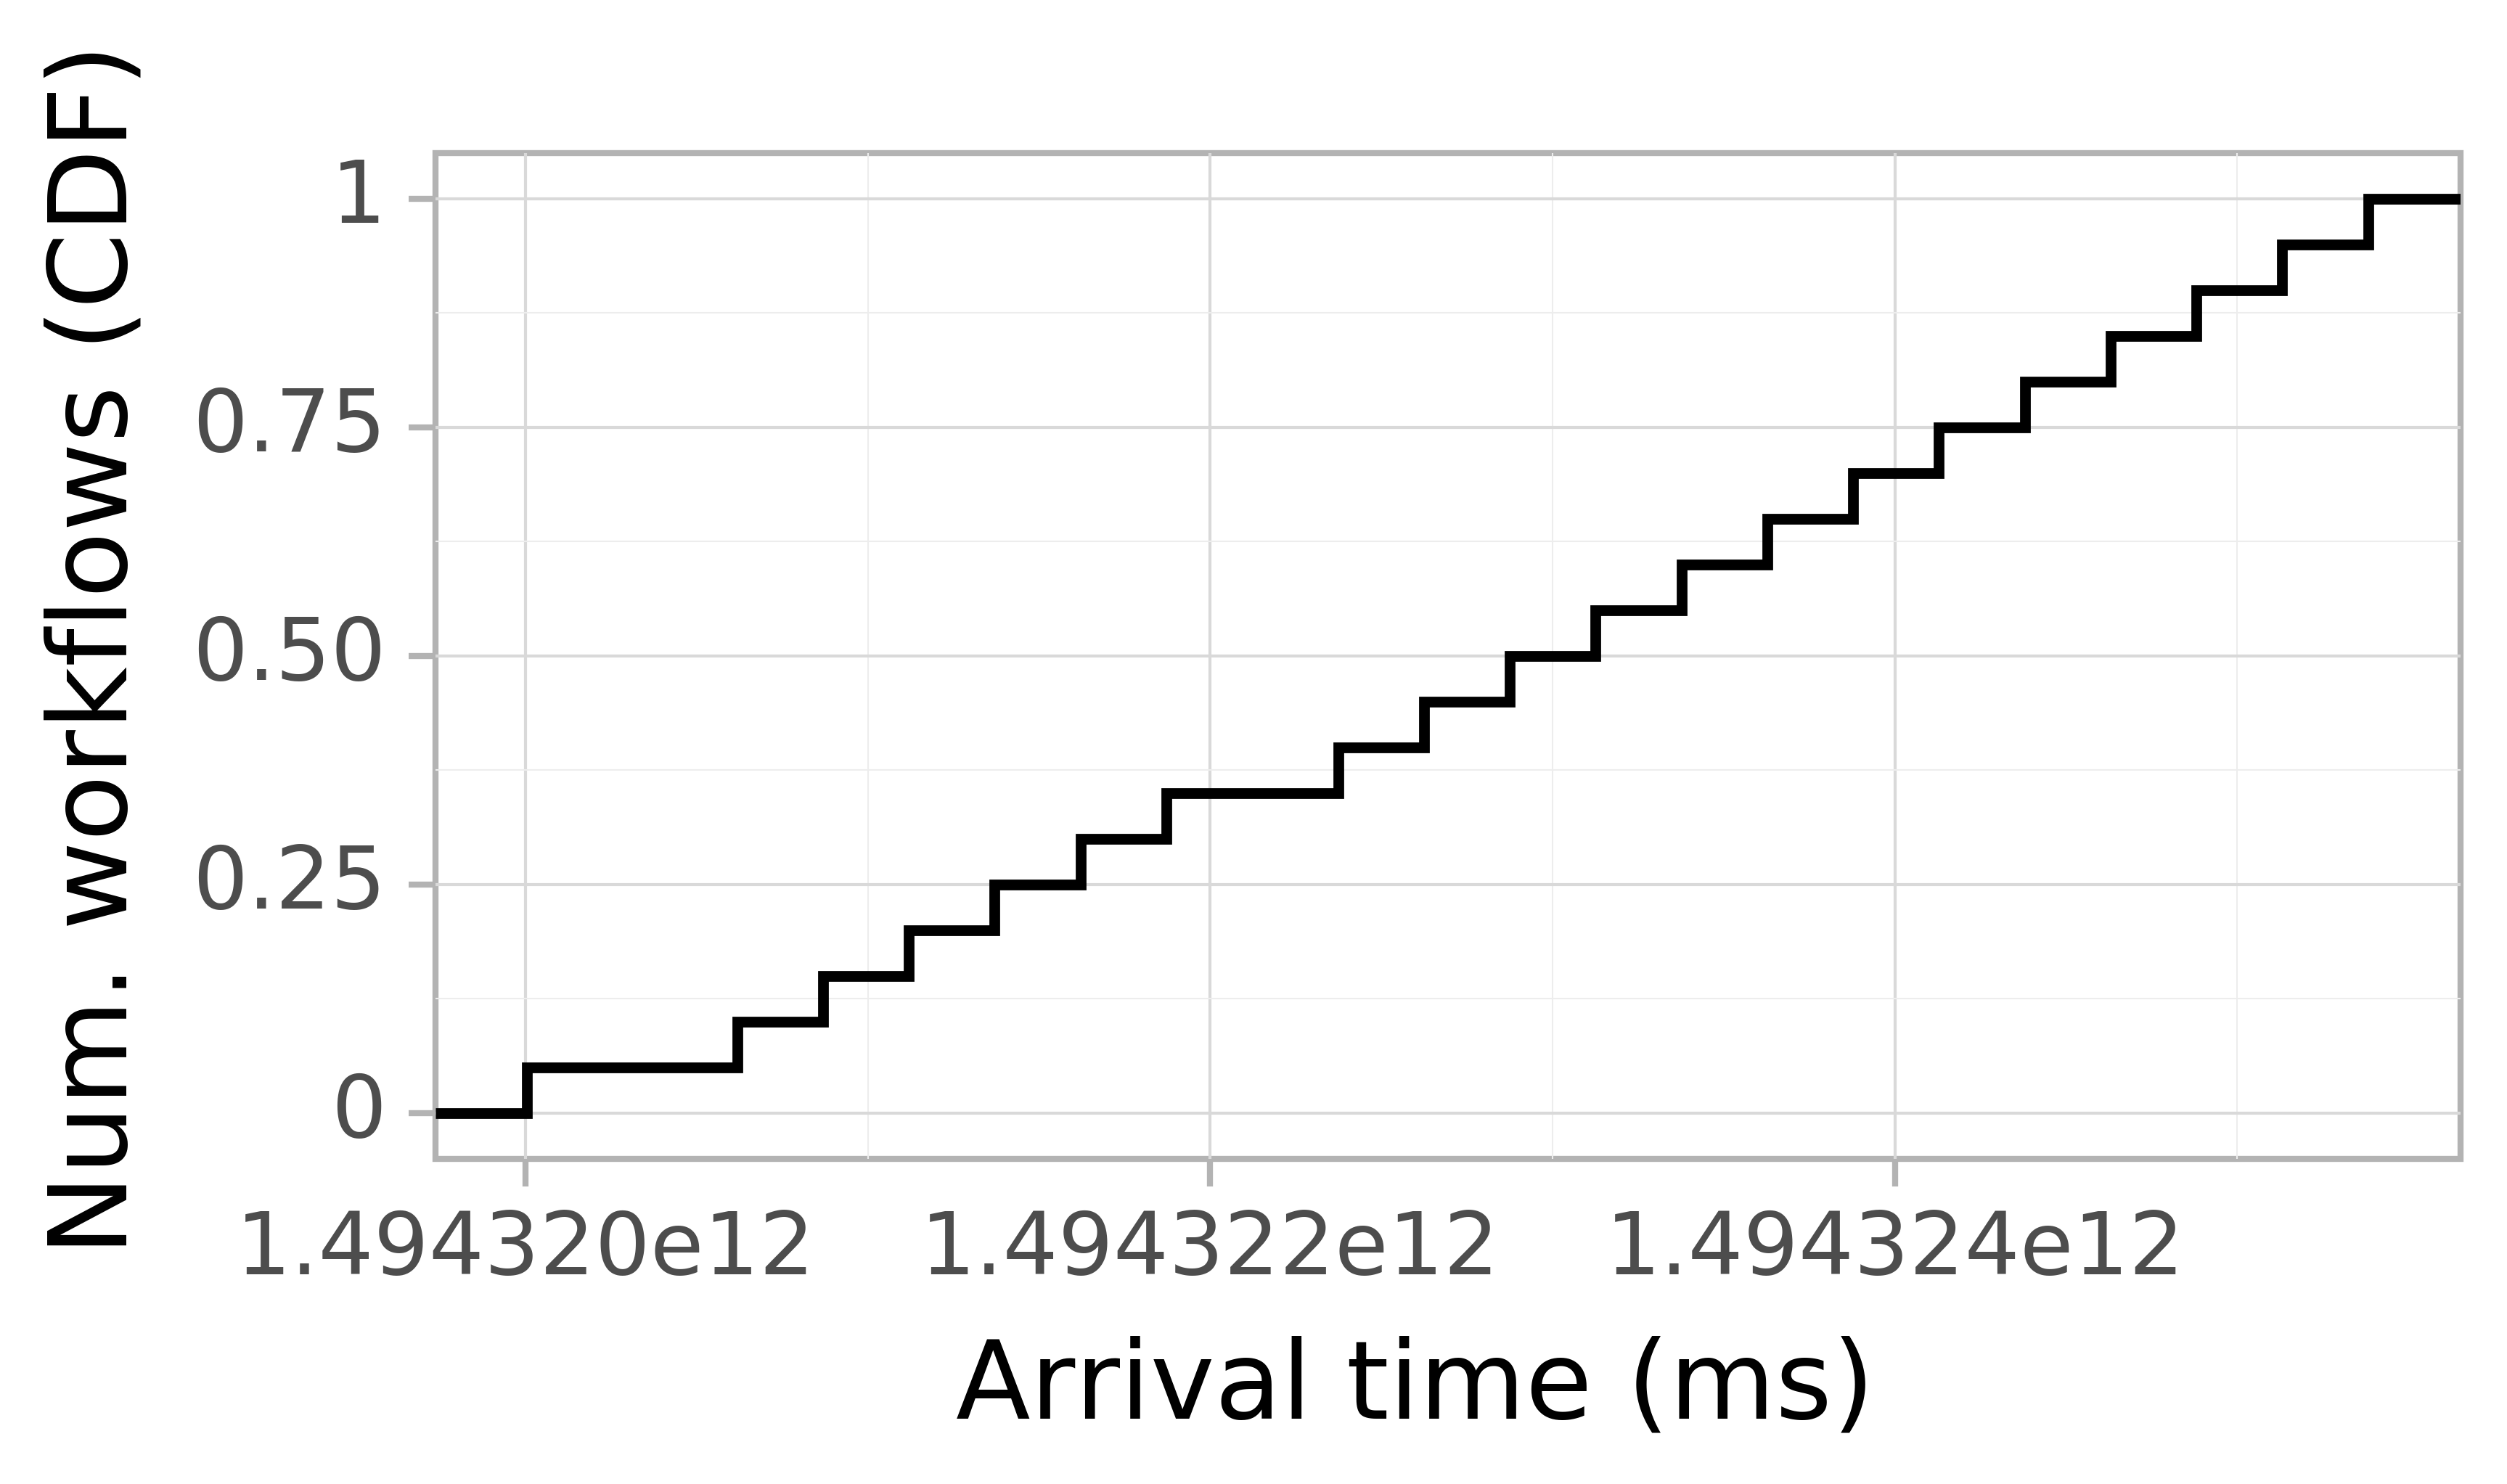 Job arrival CDF graph for the askalon-new_ee40 trace.